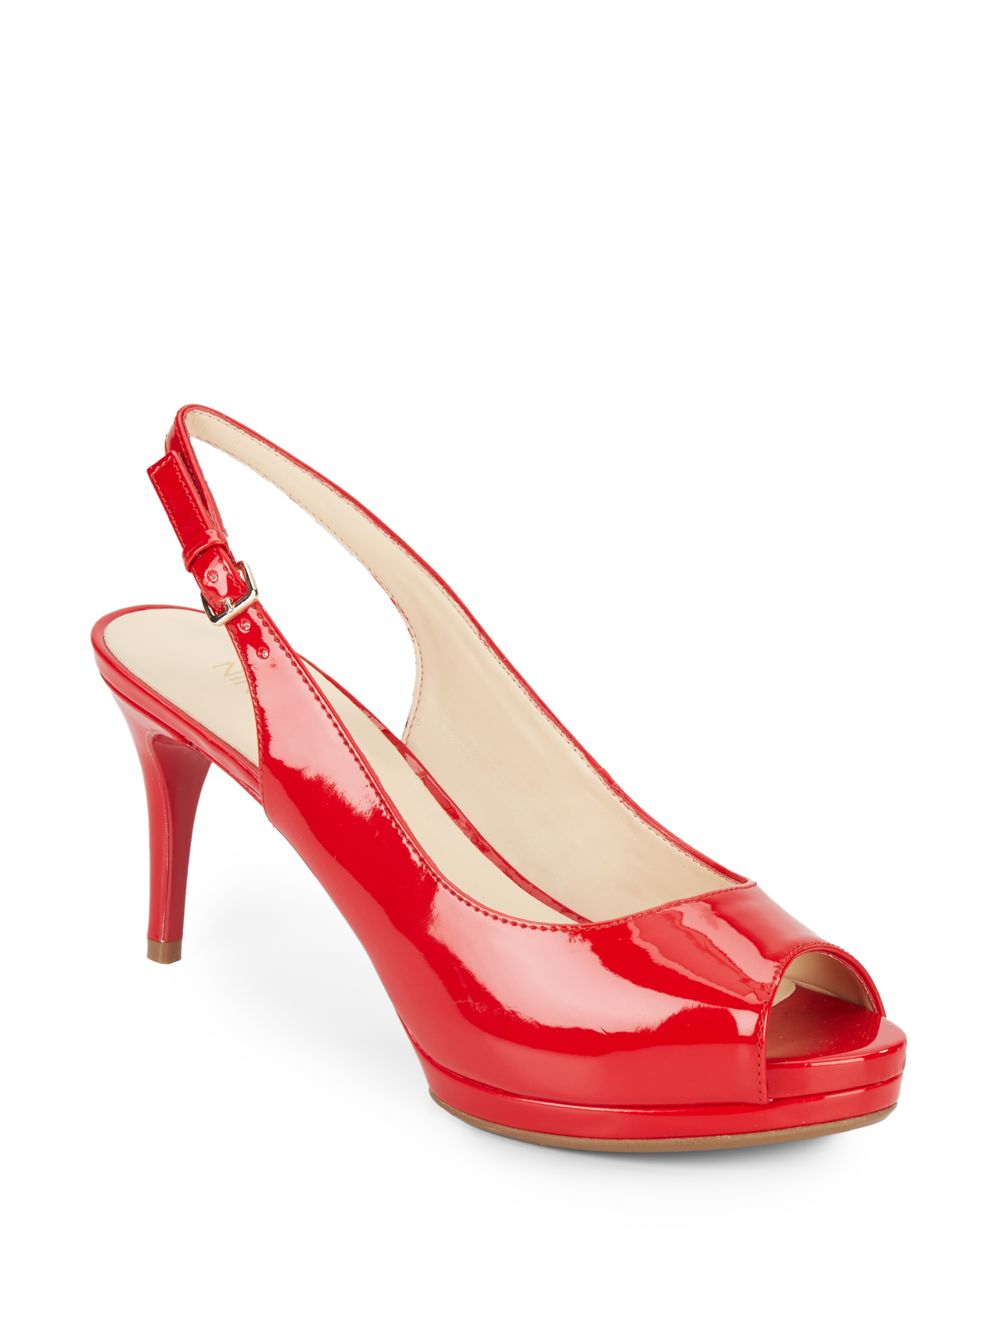 Nine West Red Shoes